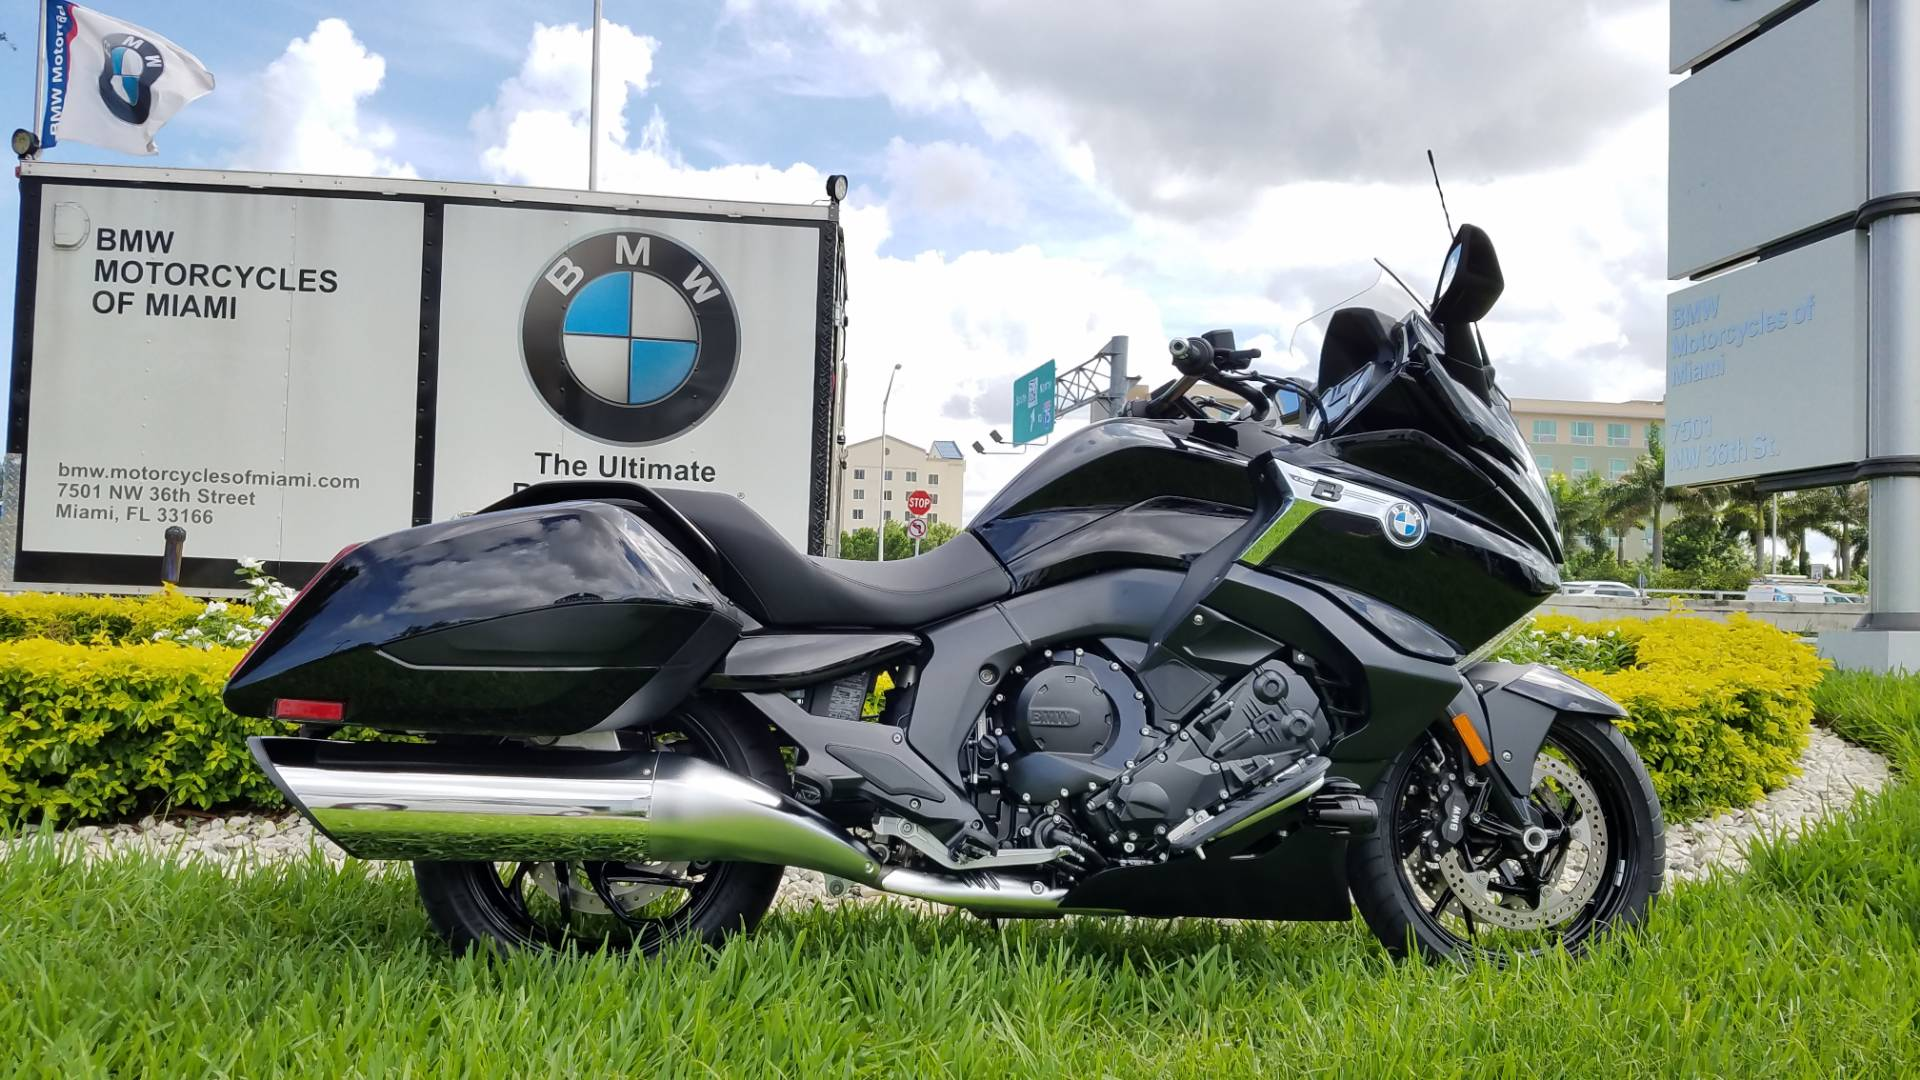 New 2018 BMW K 1600 B For Sale, BMW K 1600 B Bagger For Sale, BMW Motorcycle K 1600B, new BMW BAGGER, New BMW Motorcycle